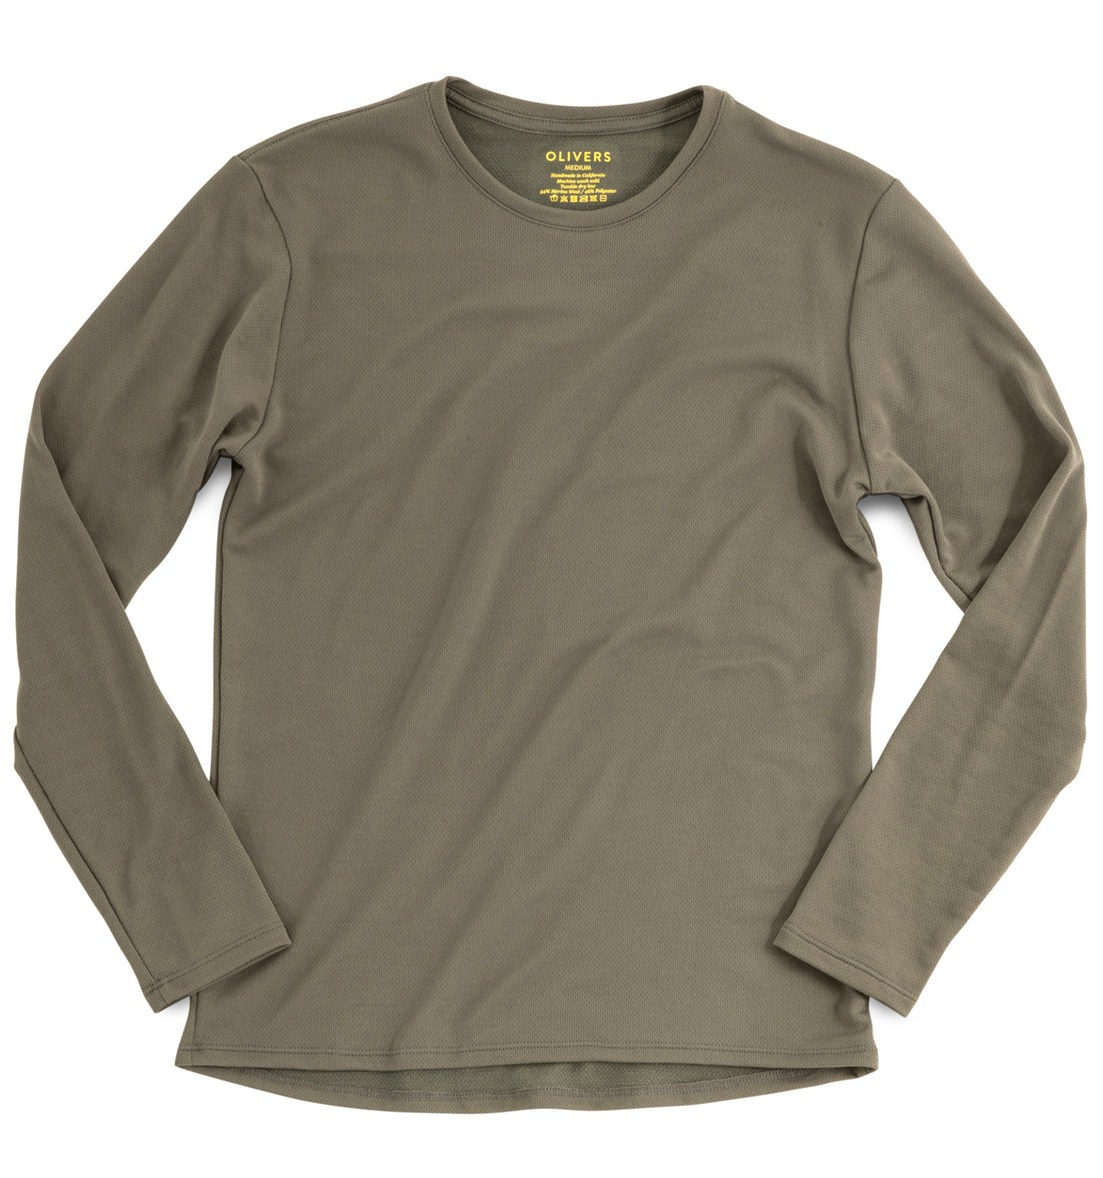 Olivers Terminal Long-Sleeve Tee